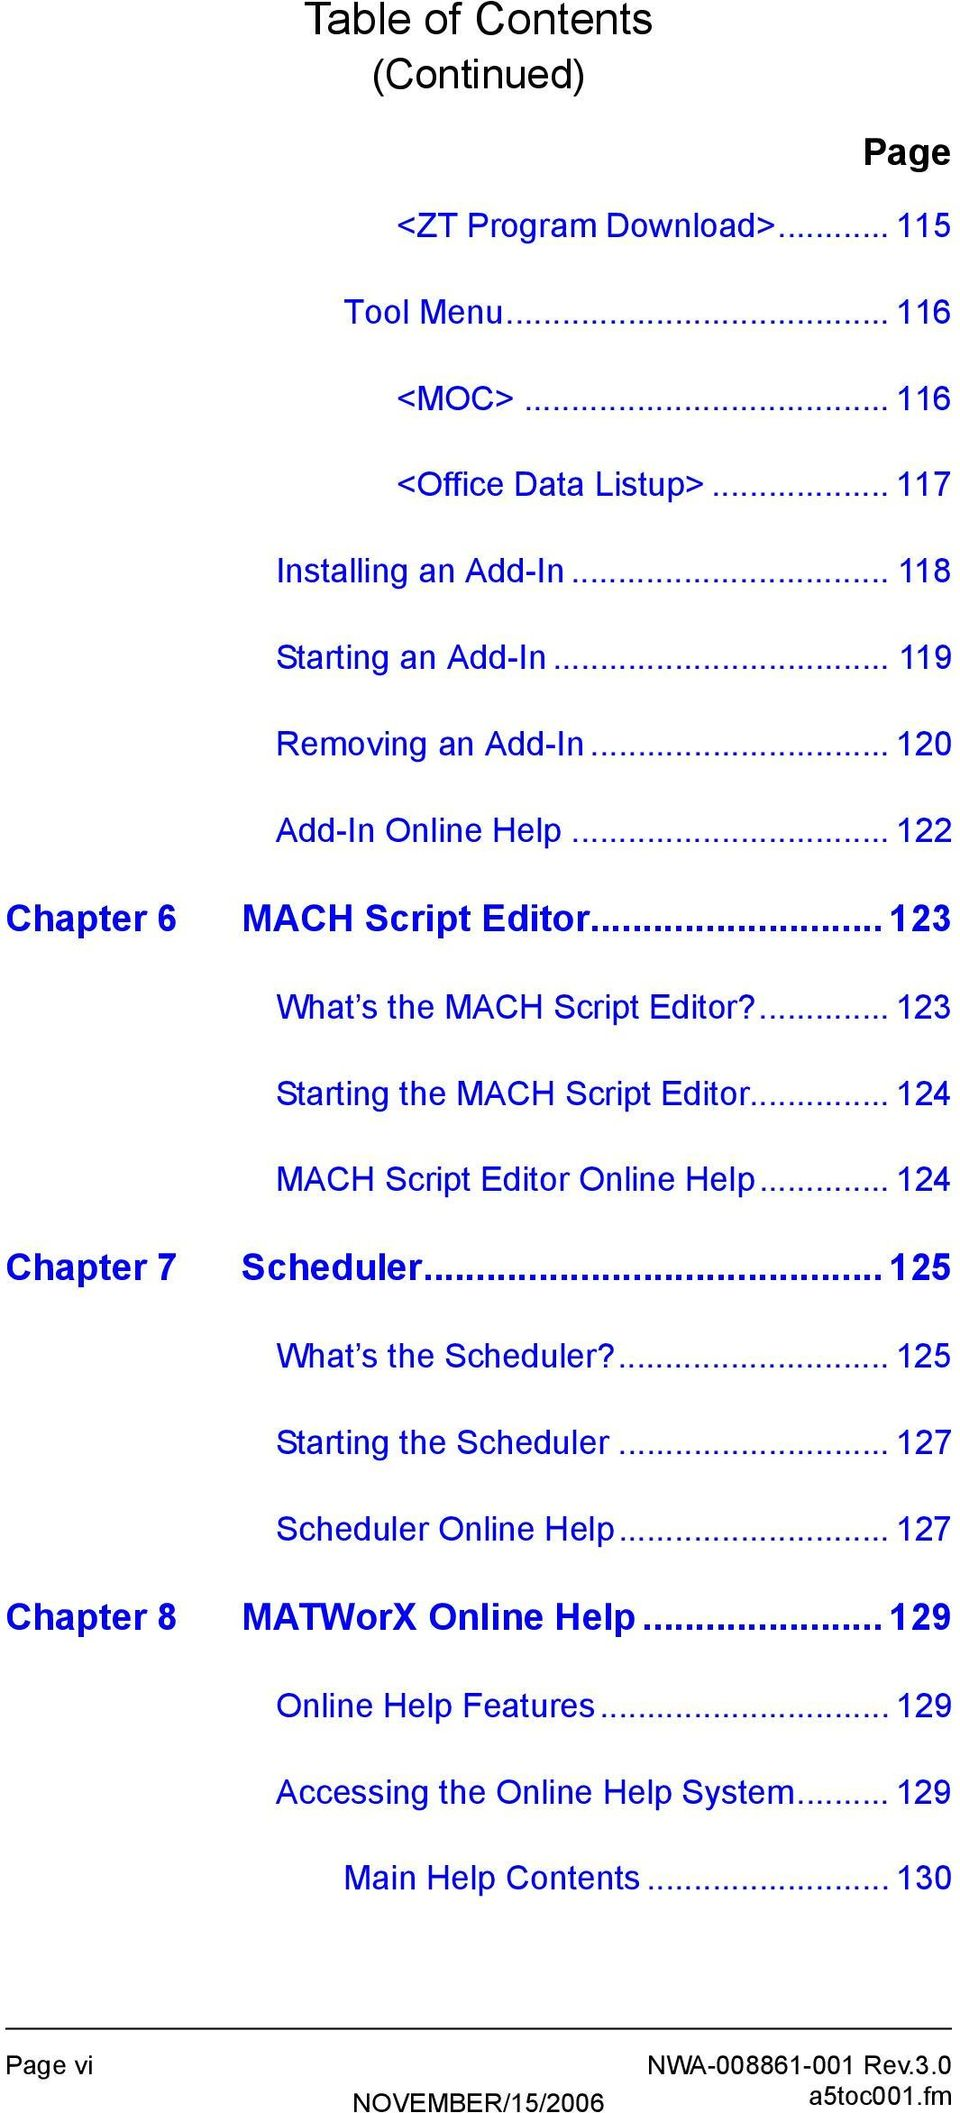 ... 123 Starting the MACH Script Editor... 124 MACH Script Editor Online Help... 124 Chapter 7 Scheduler... 125 What s the Scheduler?... 125 Starting the Scheduler.